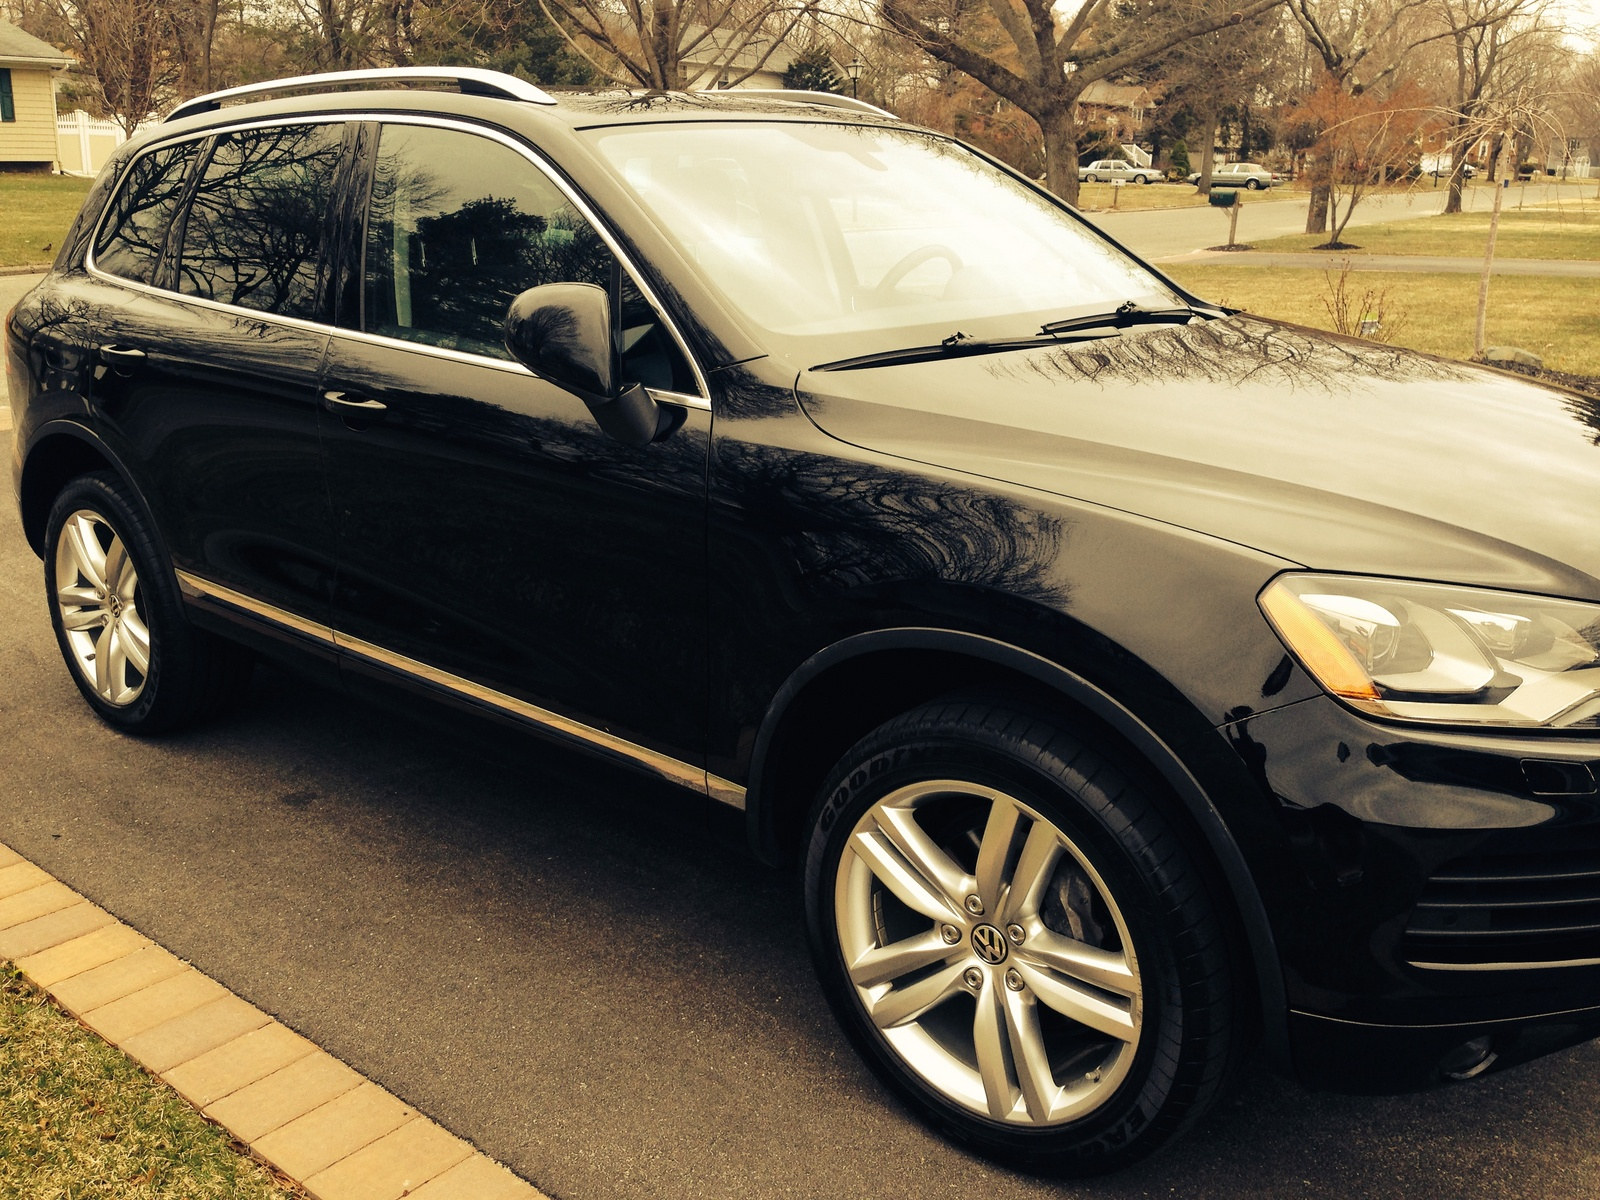 Picture of 2011 Volkswagen Touareg VR6 Executive